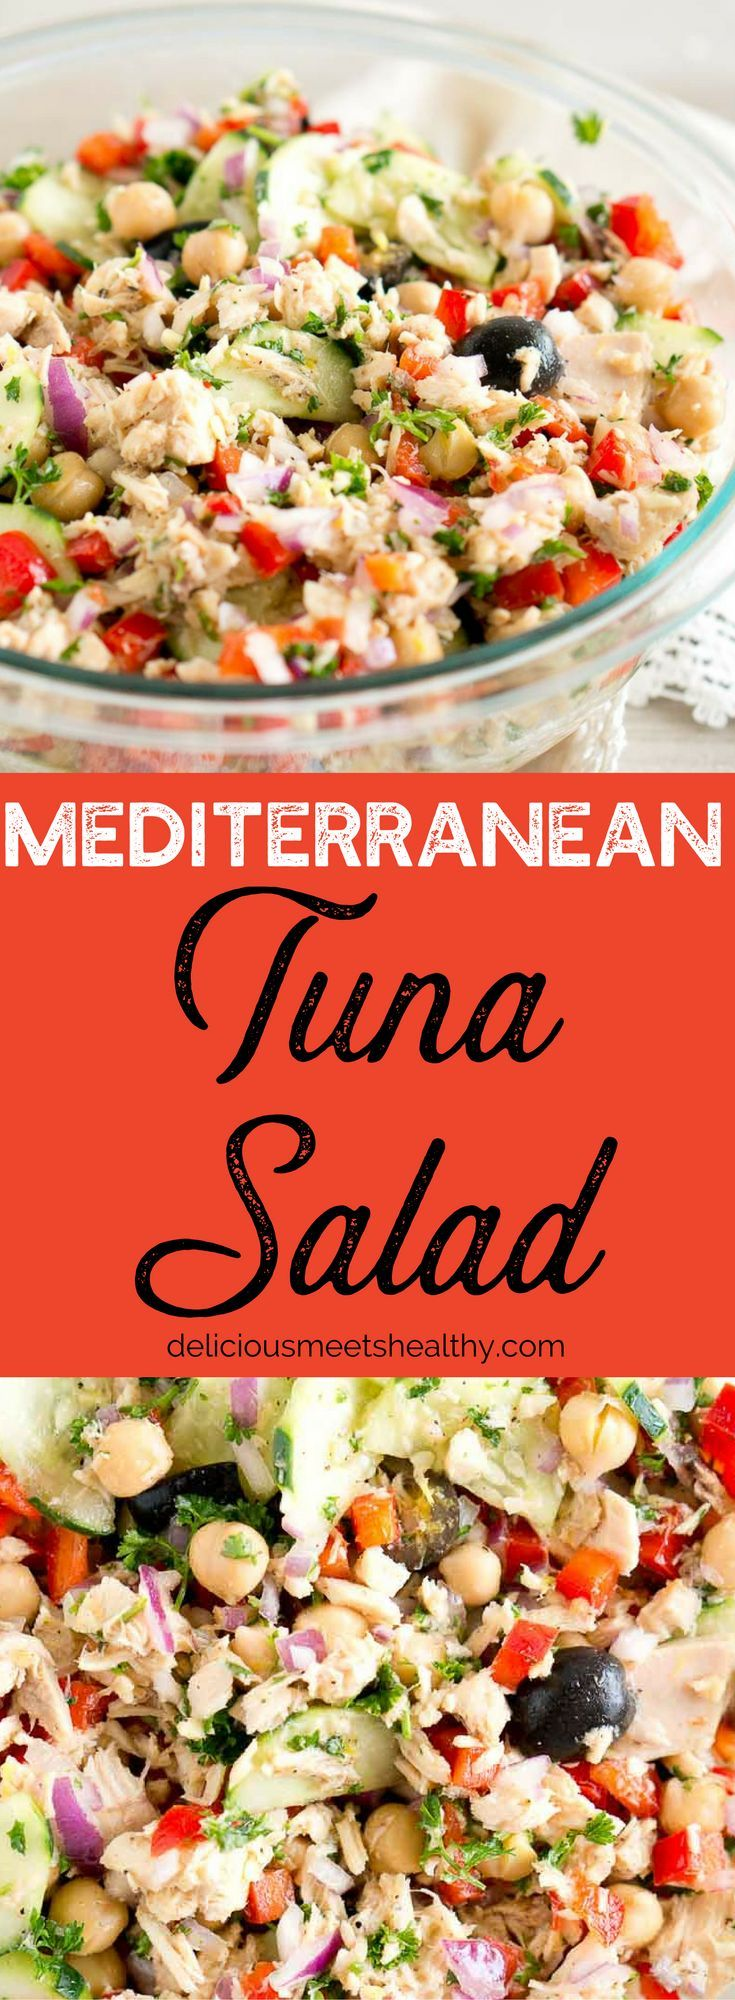 Mediterranean Tuna Salad - so much flavor and so easy to put together!